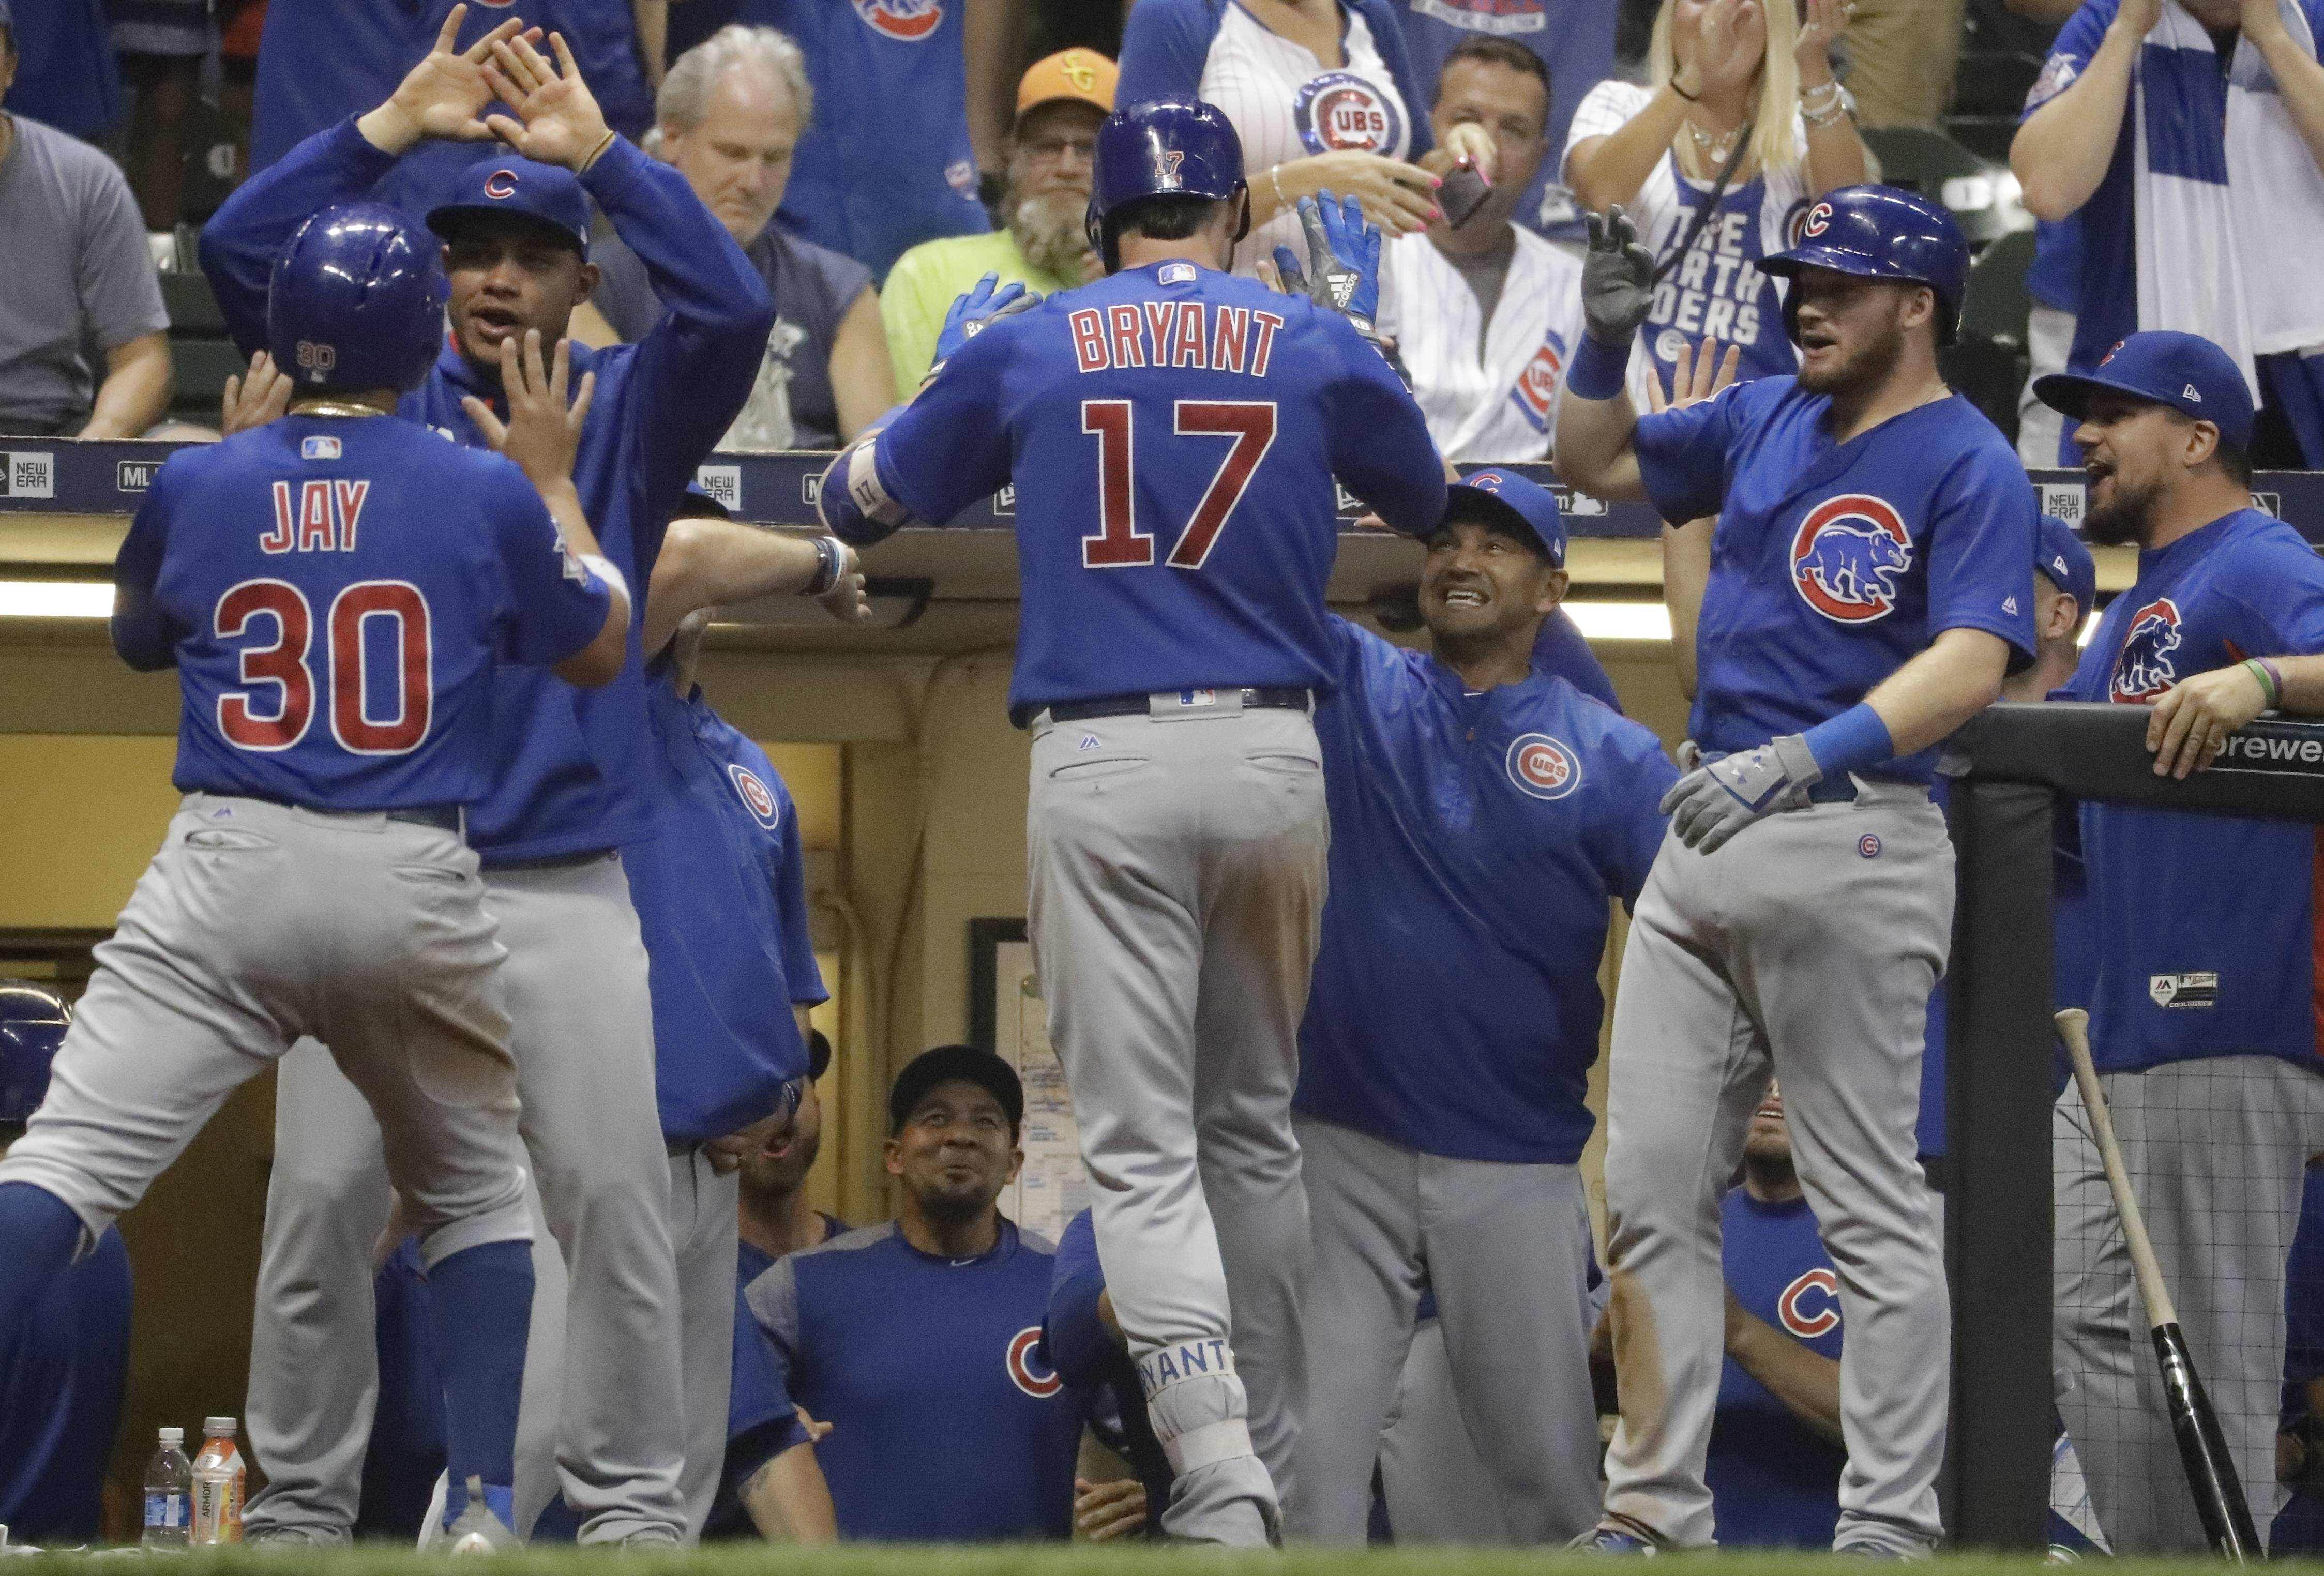 Chicago Cubs' Kris Bryant is congratulated after hitting a two-run home run during the 10th inning of a baseball game against the Milwaukee Brewers Thursday, Sept. 21, 2017, in Milwaukee. (AP Photo/Morry Gash)